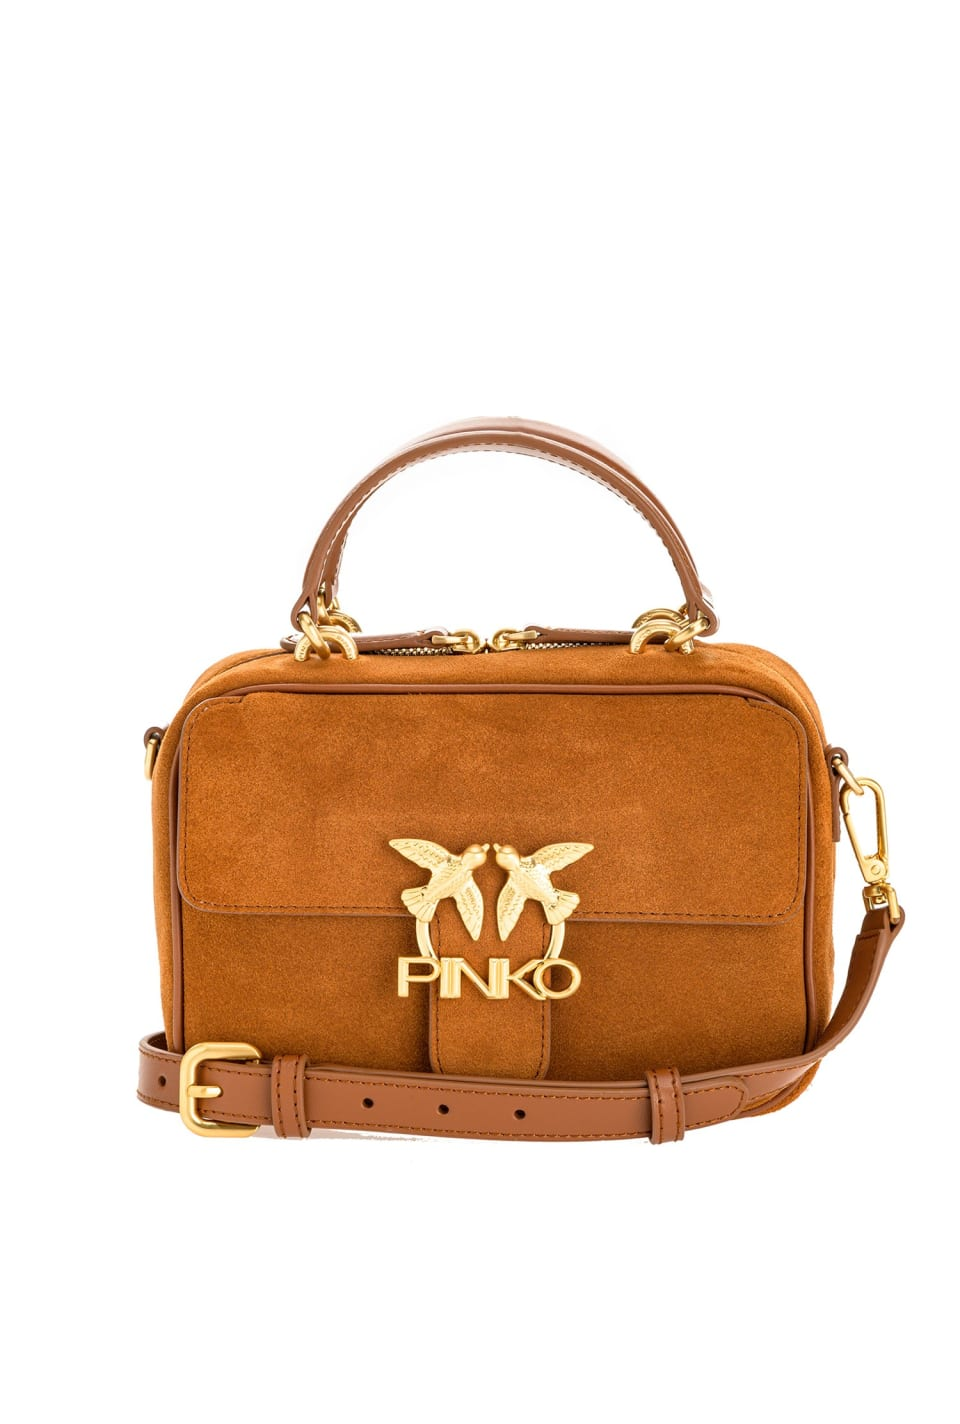 Mini Square Bag Seventies in suede and leather - Pinko